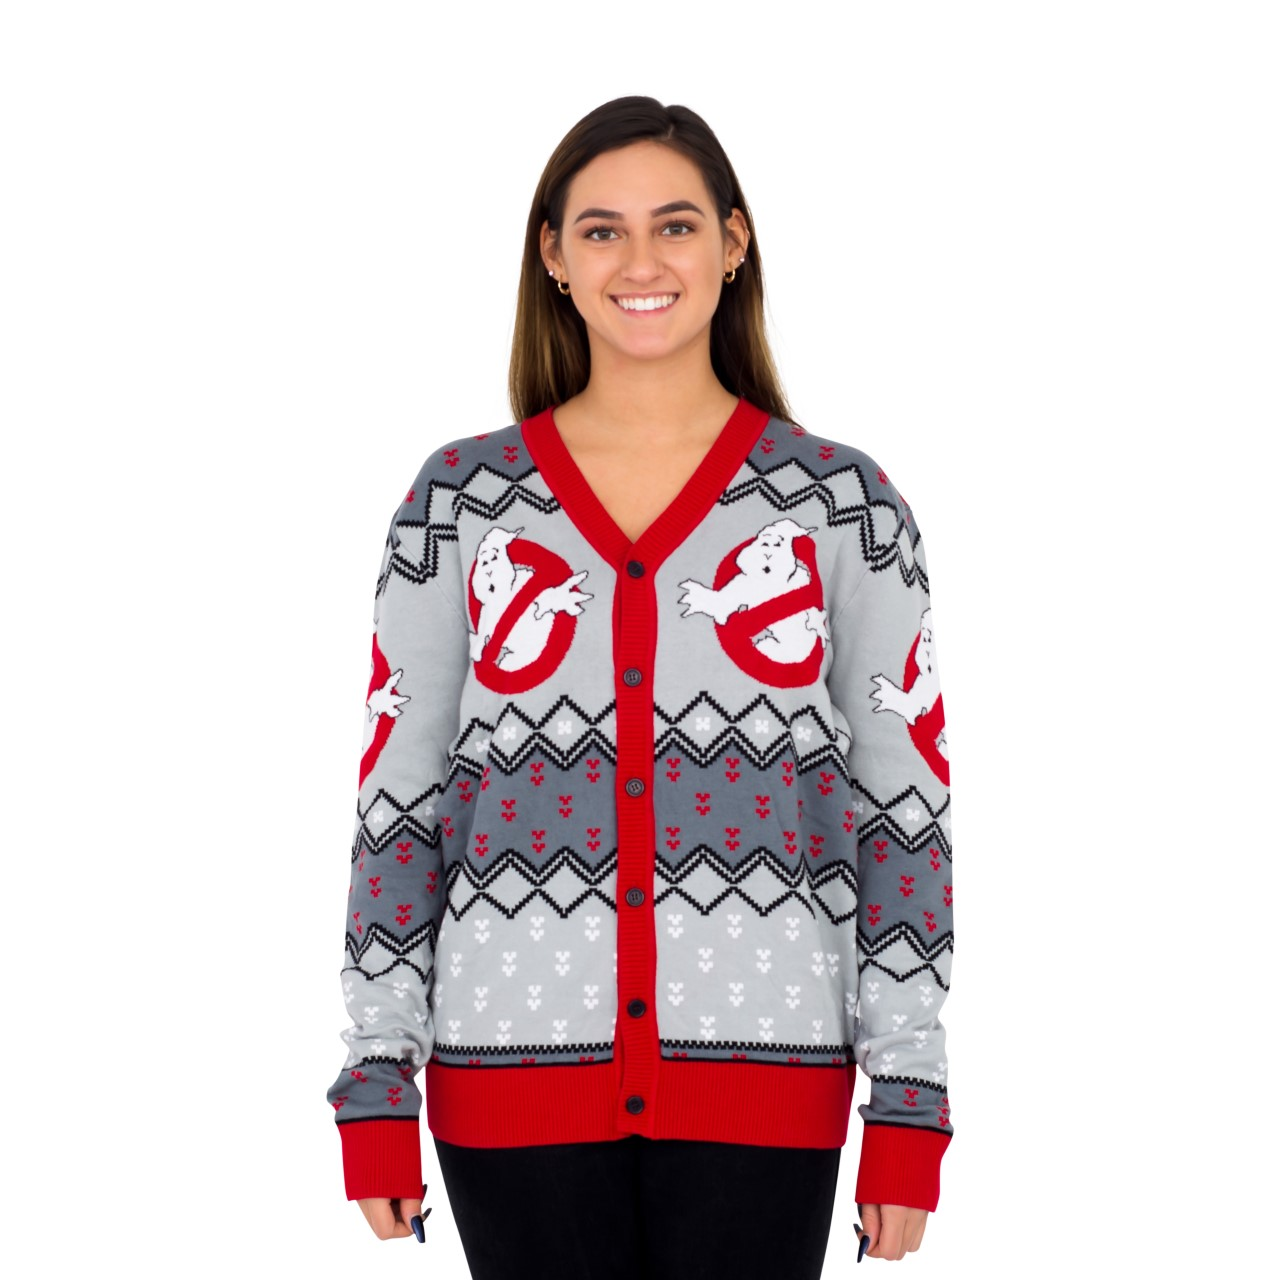 Women's Ghostbusters Logo Ugly Christmas Cardigan Sweater,Ugly Christmas Sweaters | Funny Xmas Sweaters for Men and Women